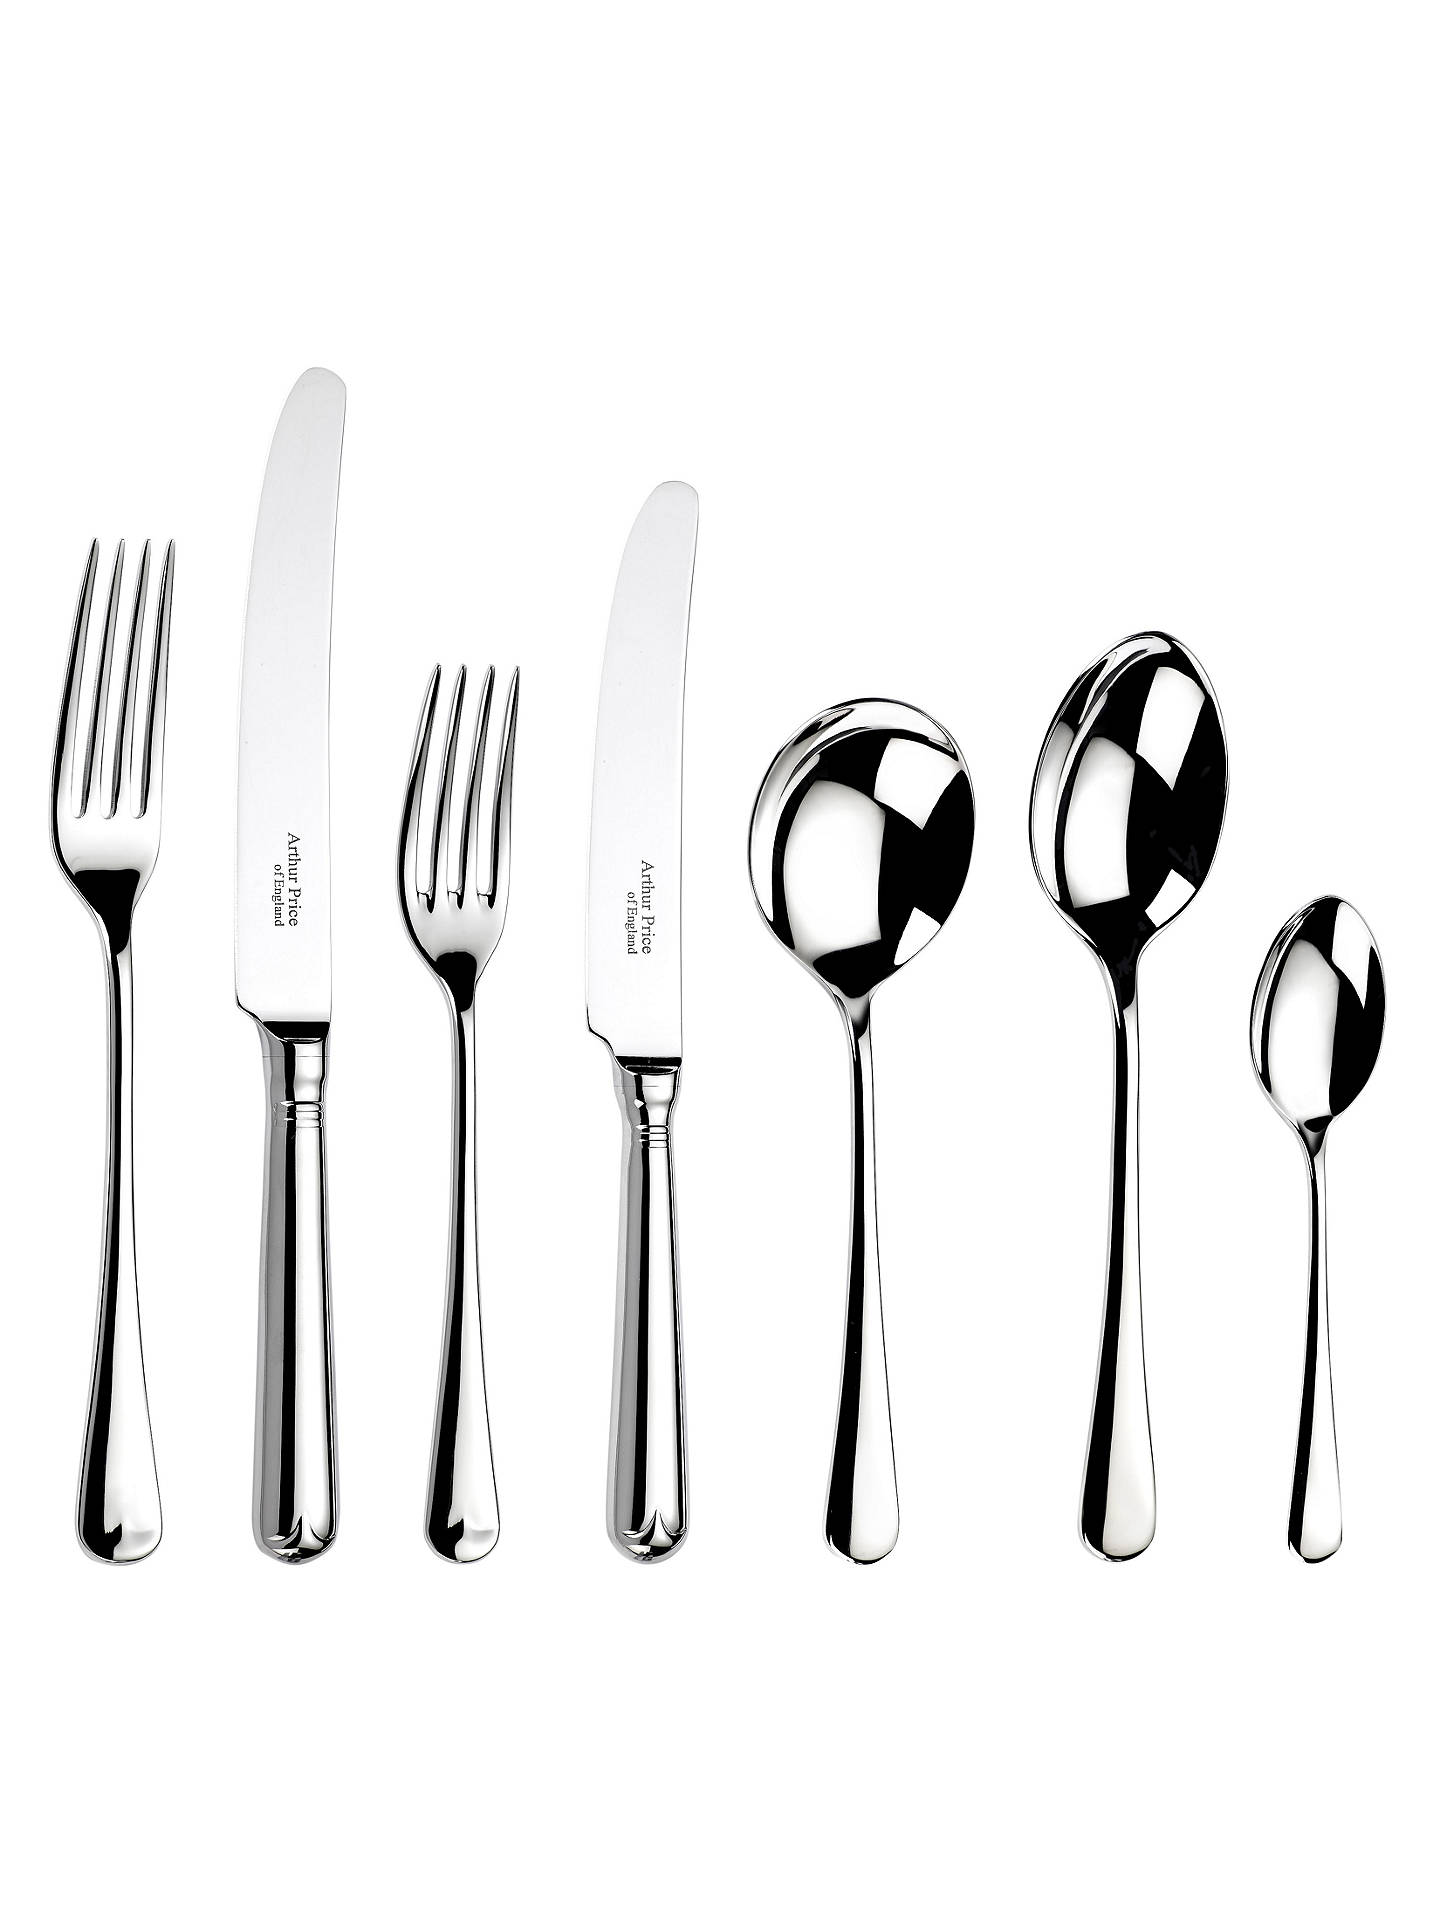 Buy Arthur Price Old English Cutlery Canteen, 60 Piece Online at johnlewis.com